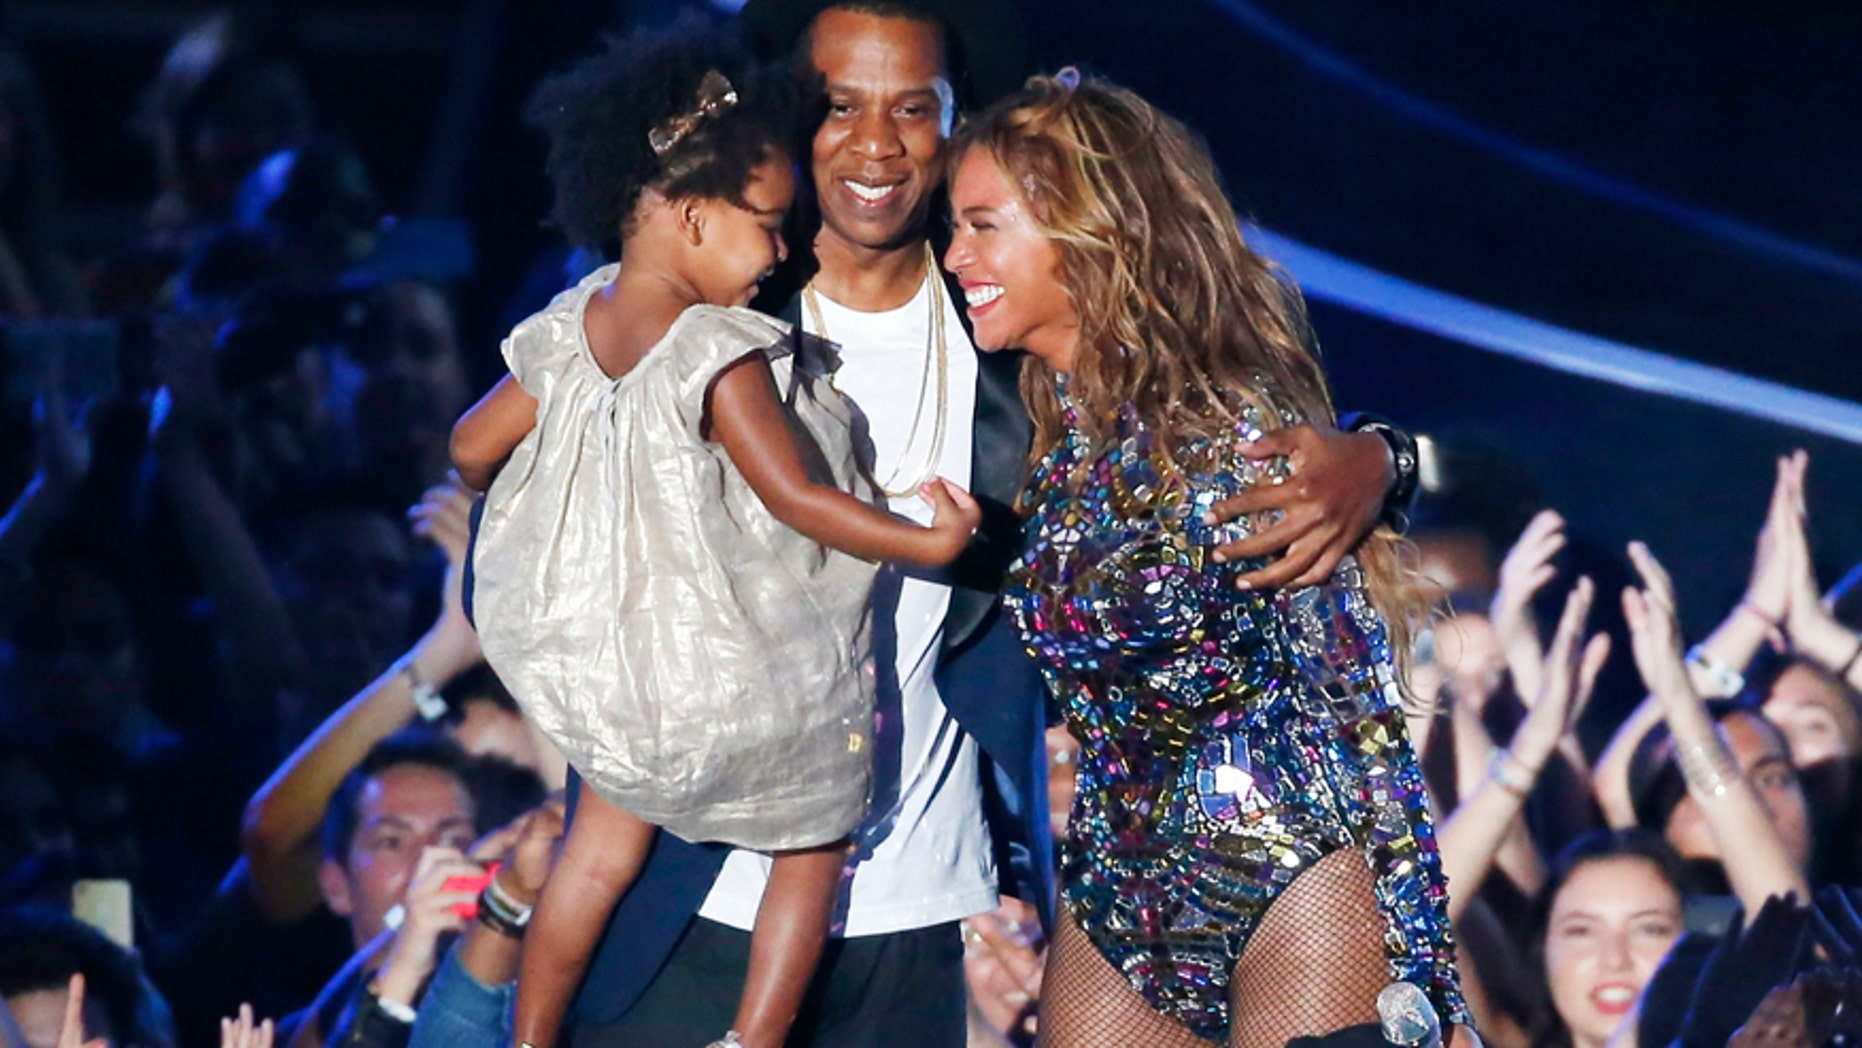 Beyonce smiles with Jay-Z and daughter Blue Ivy after accepting the Video Vanguard Award on stage during the 2014 MTV Video Music Awards in Inglewood, California August 24, 2014.